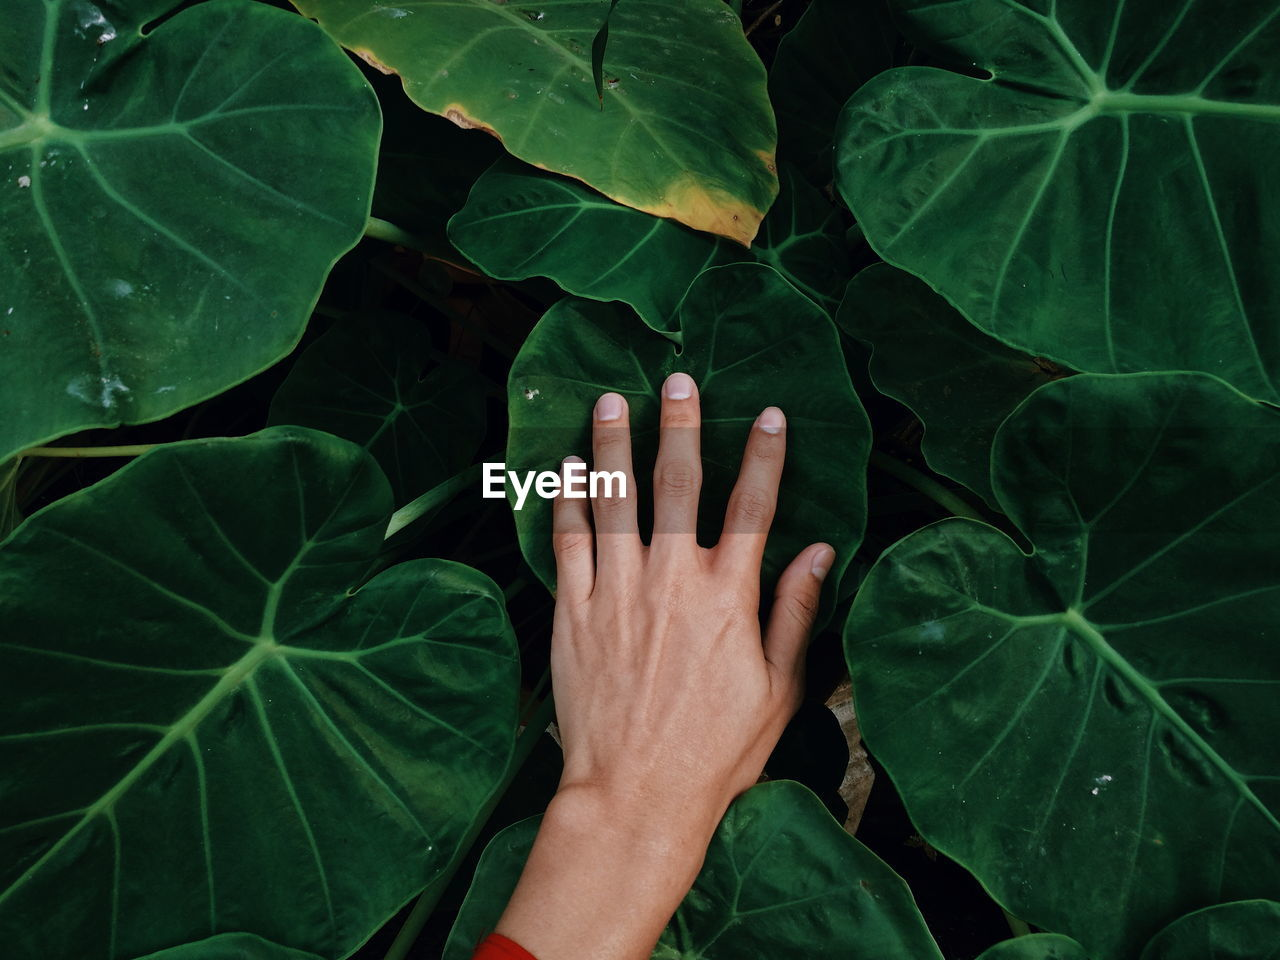 leaf, plant part, green color, one person, real people, hand, human body part, human hand, body part, high angle view, close-up, unrecognizable person, lifestyles, nature, plant, personal perspective, touching, growth, day, finger, leaves, human limb